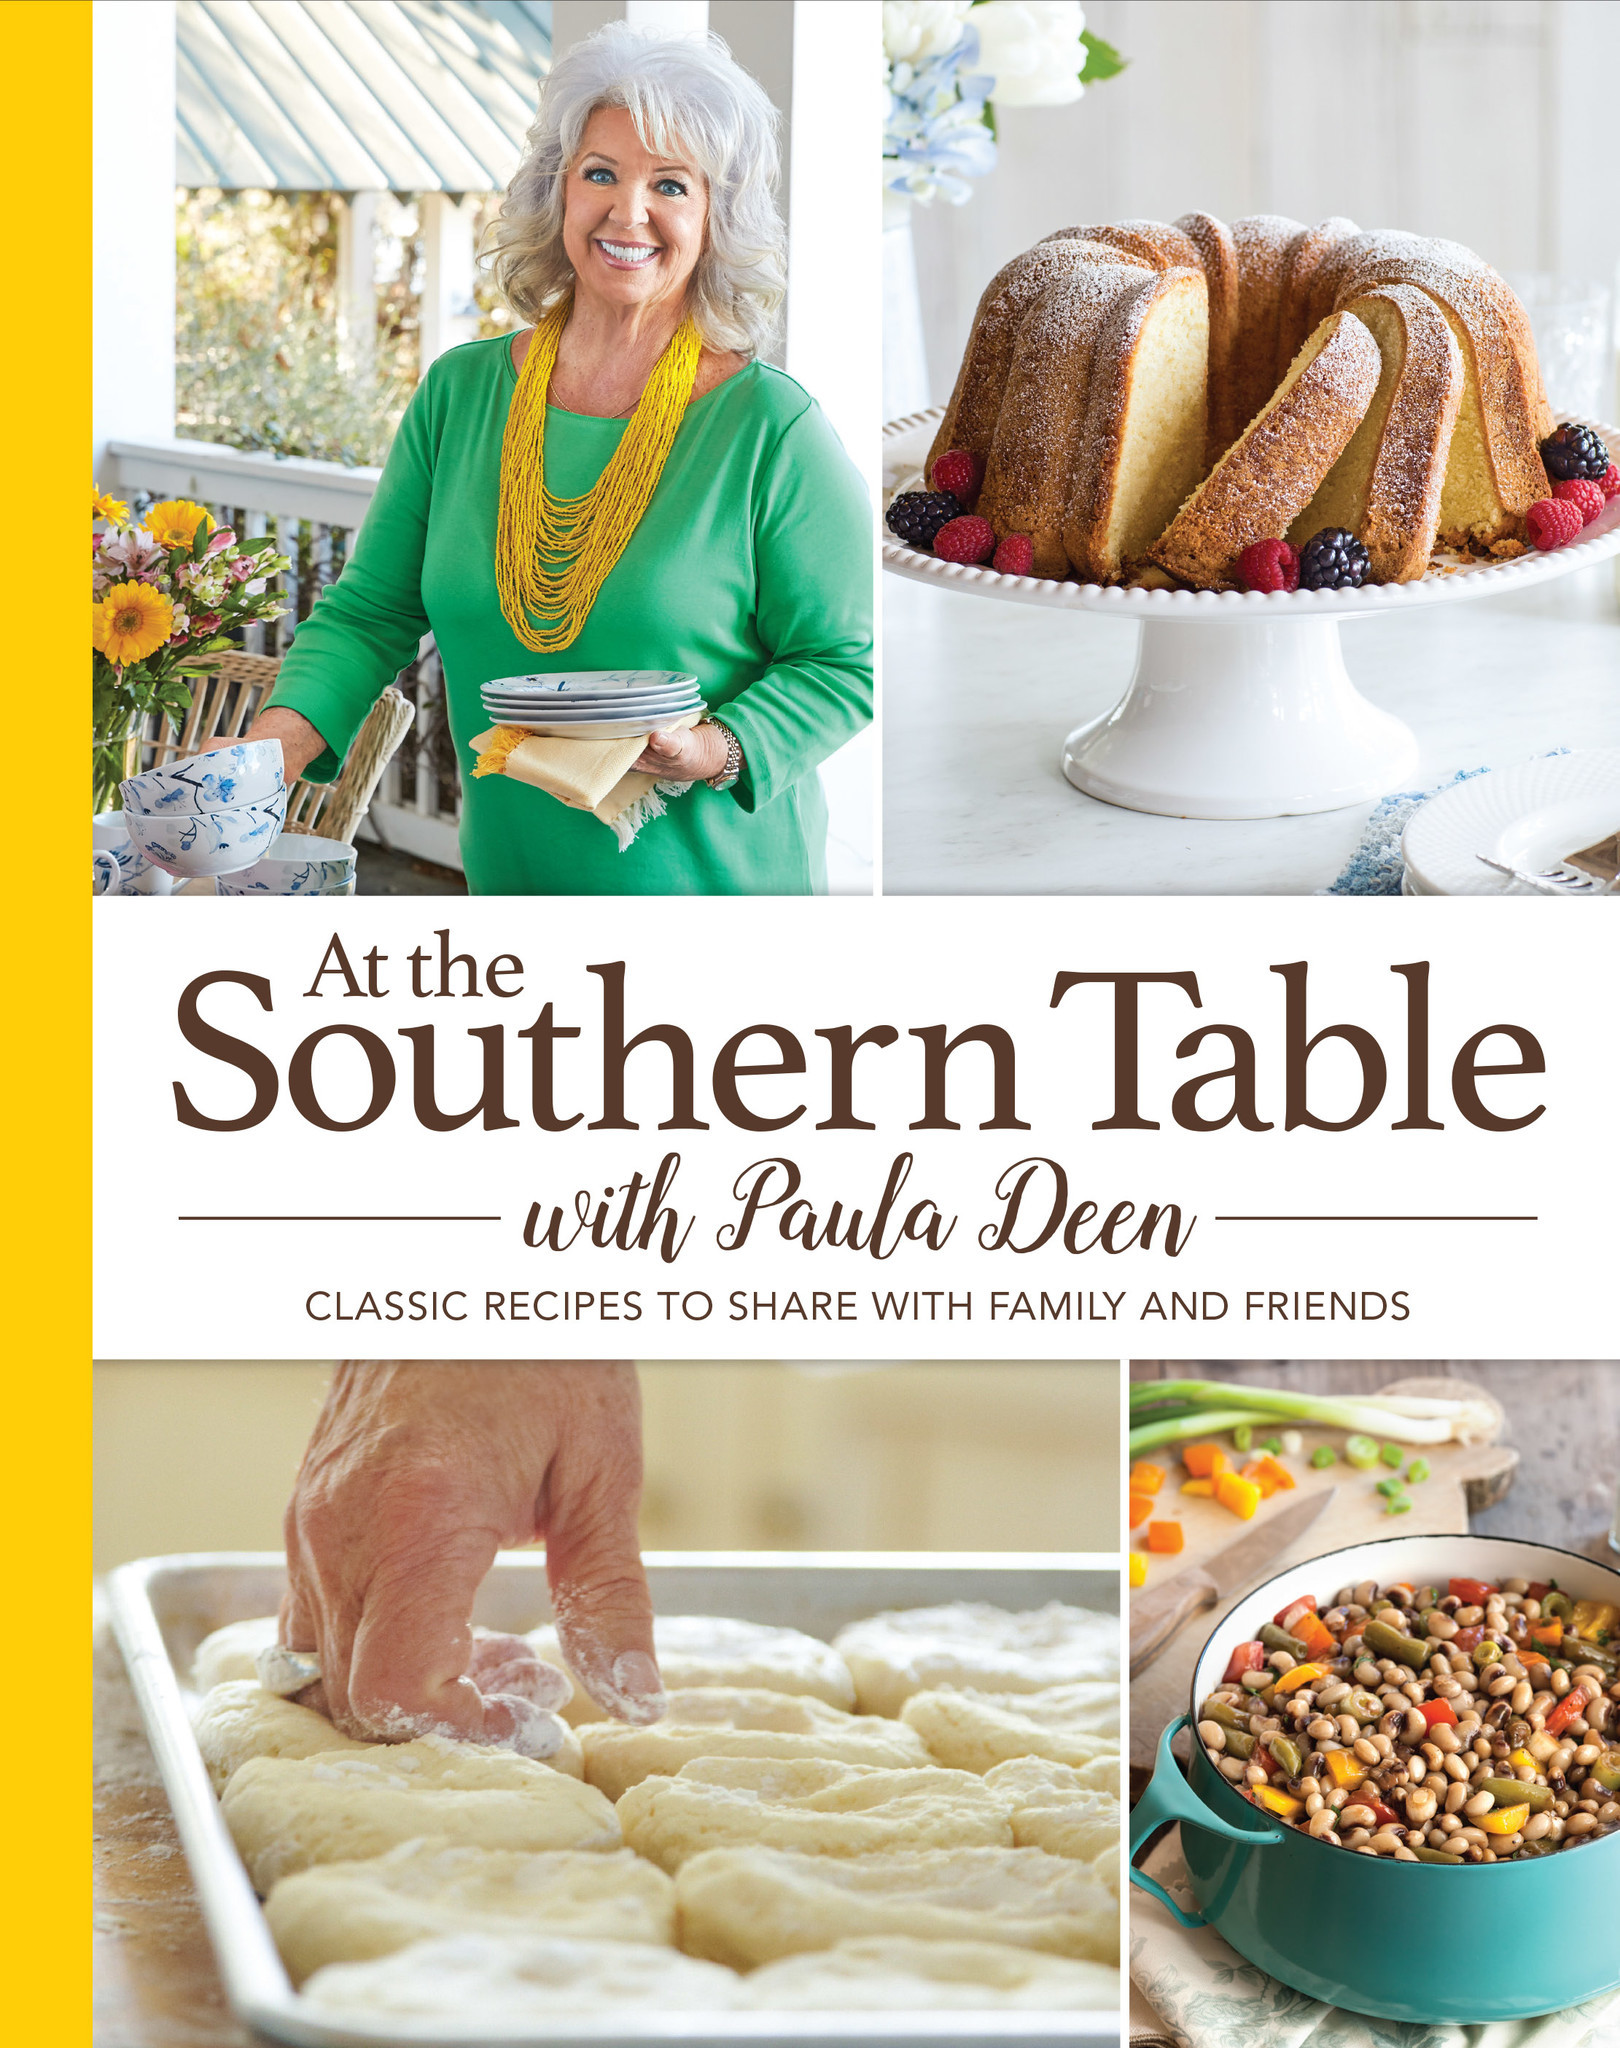 Paula Deen will sign 'At the Southern Table with Paula Deen,' 6 p.m. Saturday, Sept. 30 at Warwick's Books.